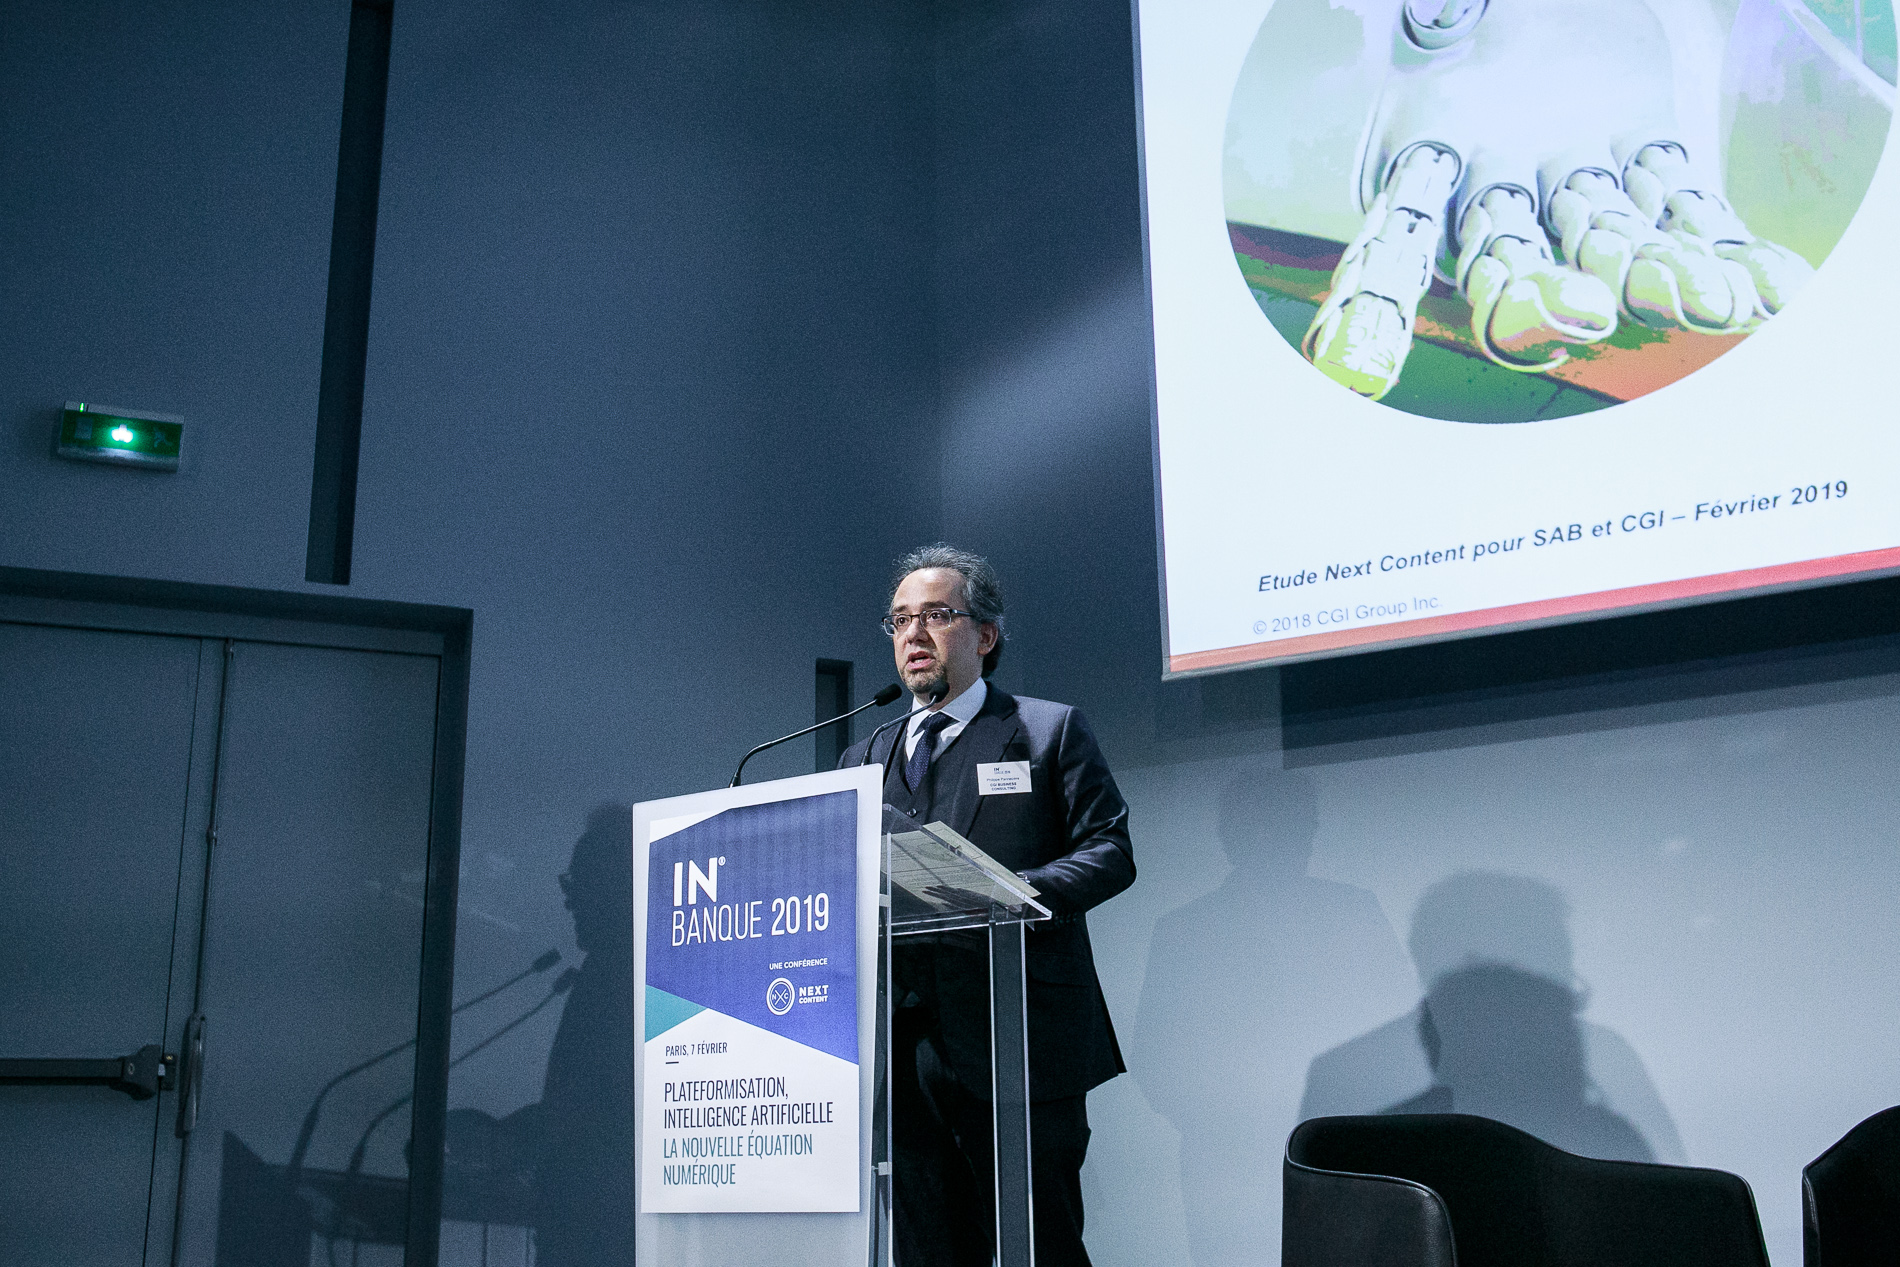 Philippe Pannecière (CGI Business Consulting) - IN BANQUE 2019 - Crédit photo : Guillermo Gomez